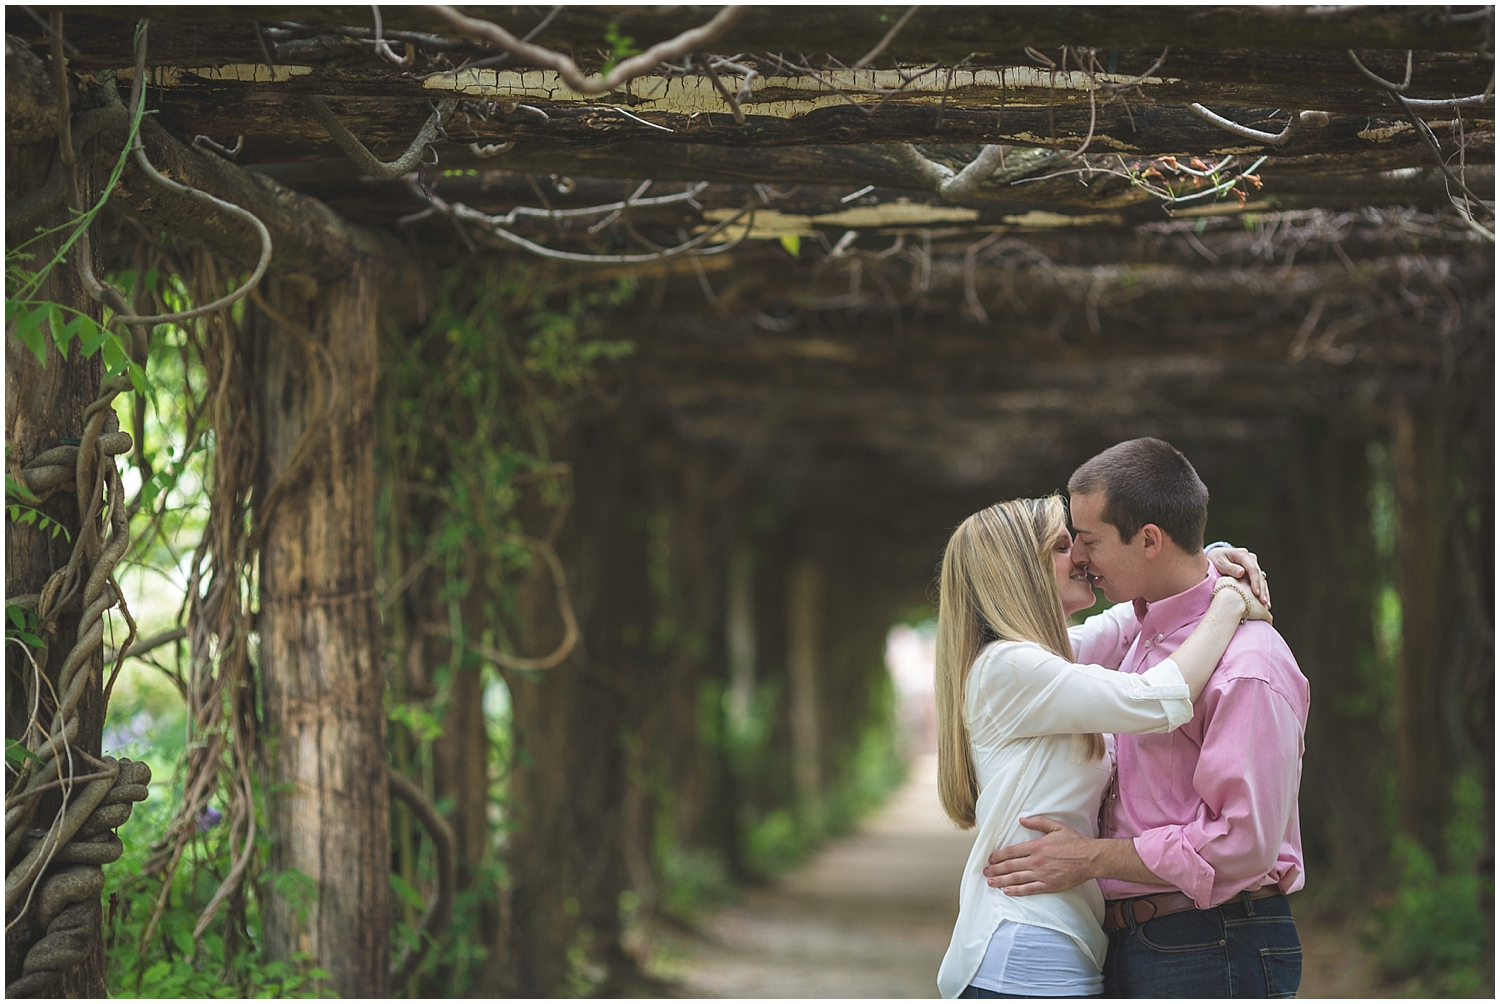 Coker Arboretum UNC Campus Chapel Hill North Carolina Engagement Photographer-0017.jpg